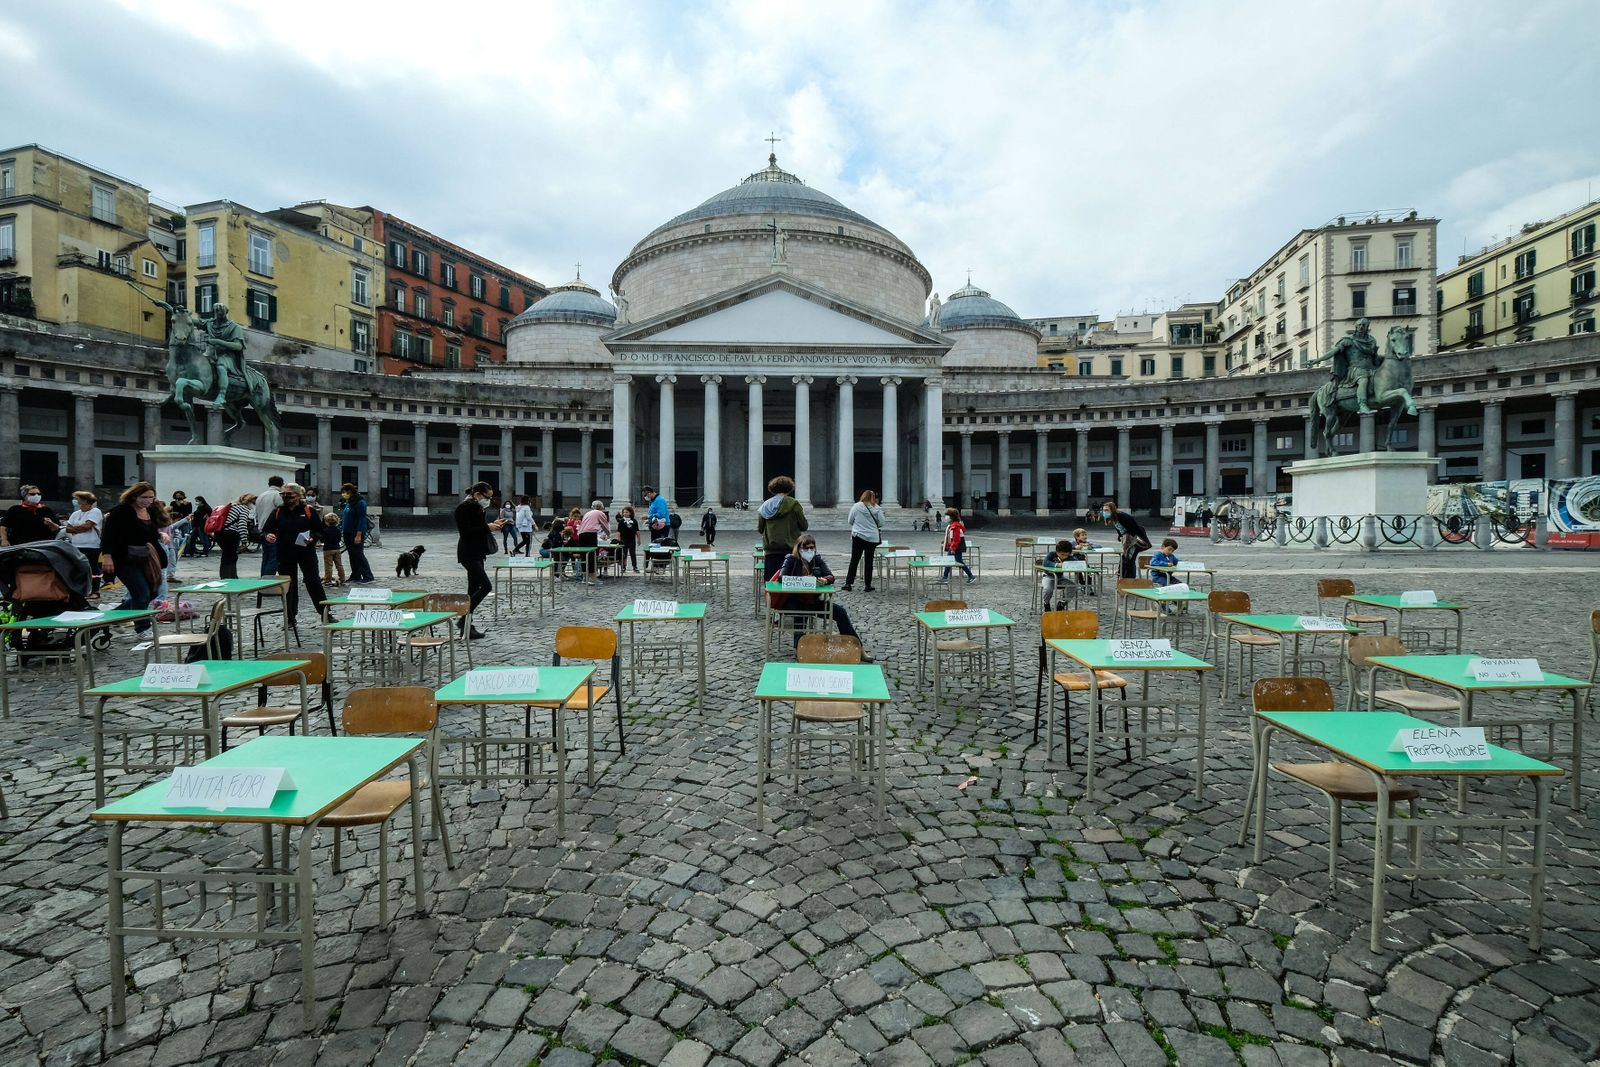 A moment of the demonstration against DaD (Distance Learning) at Plebiscito square in Naples, southern Italy PUBLICATIO